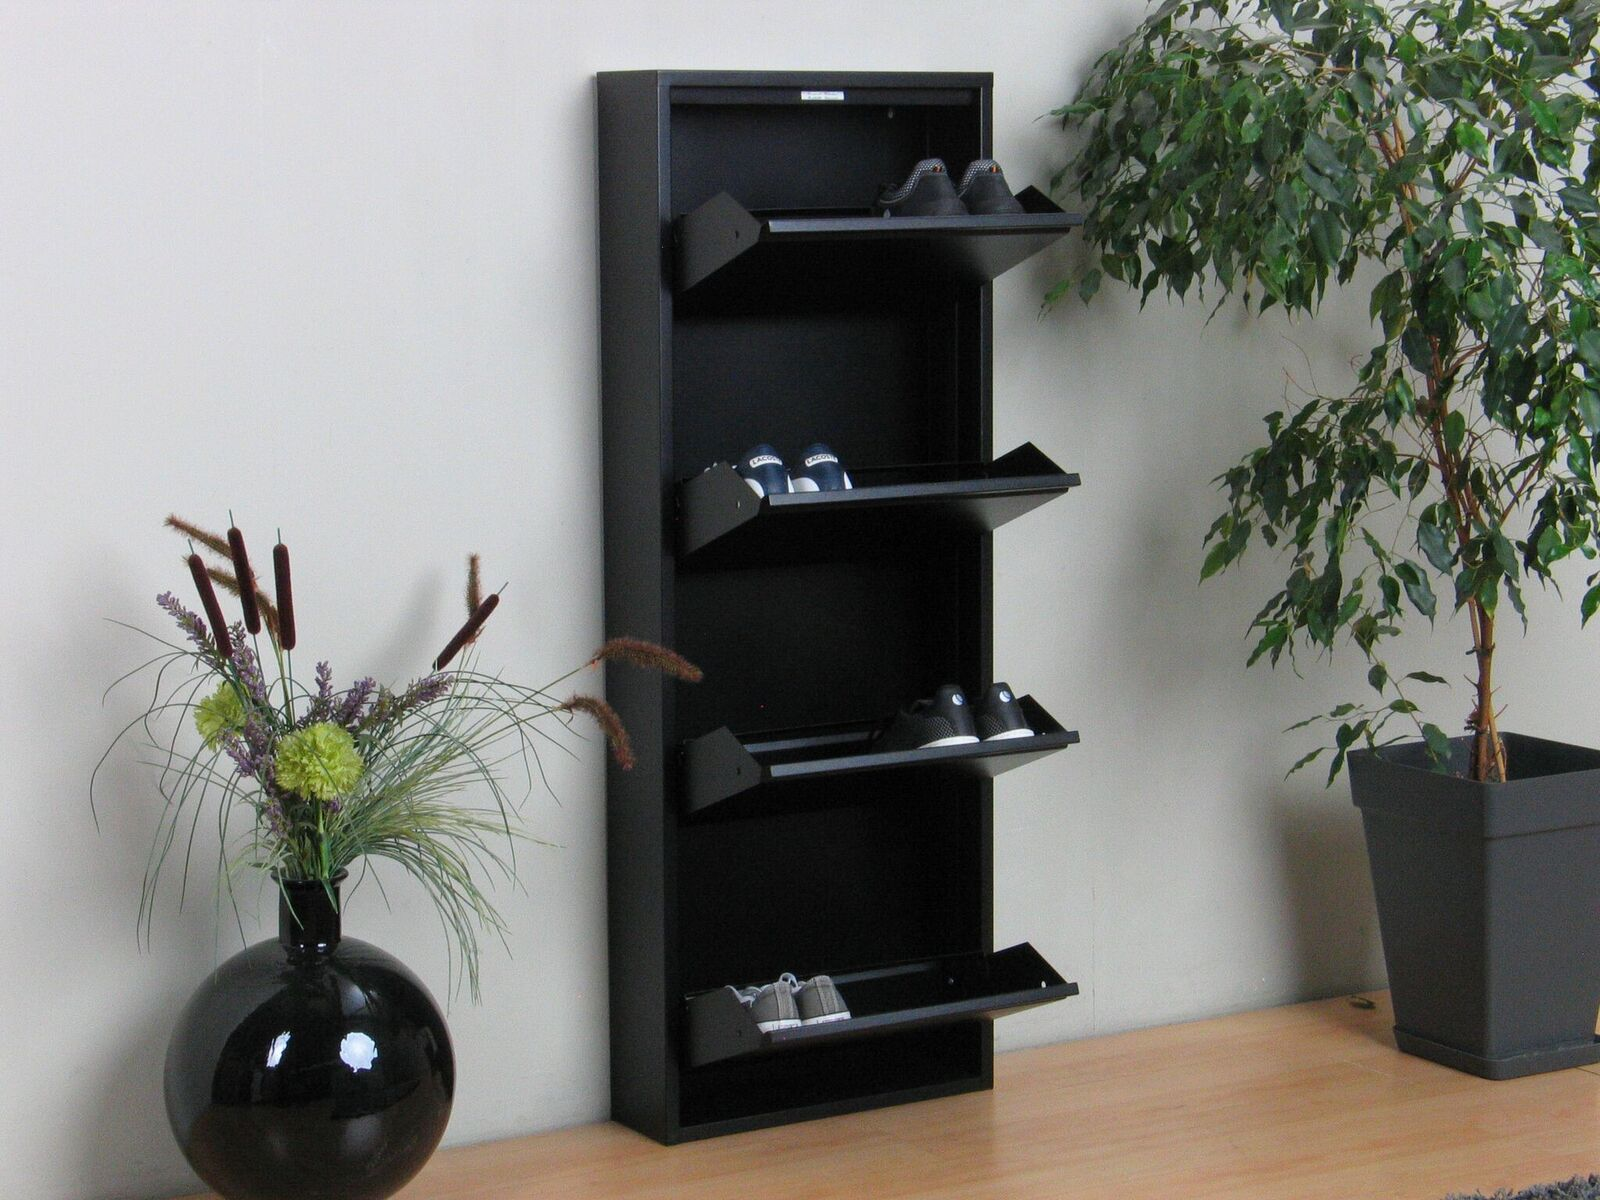 schuhschrank pisa 4 klappen metall schuhkipper schuhregal. Black Bedroom Furniture Sets. Home Design Ideas